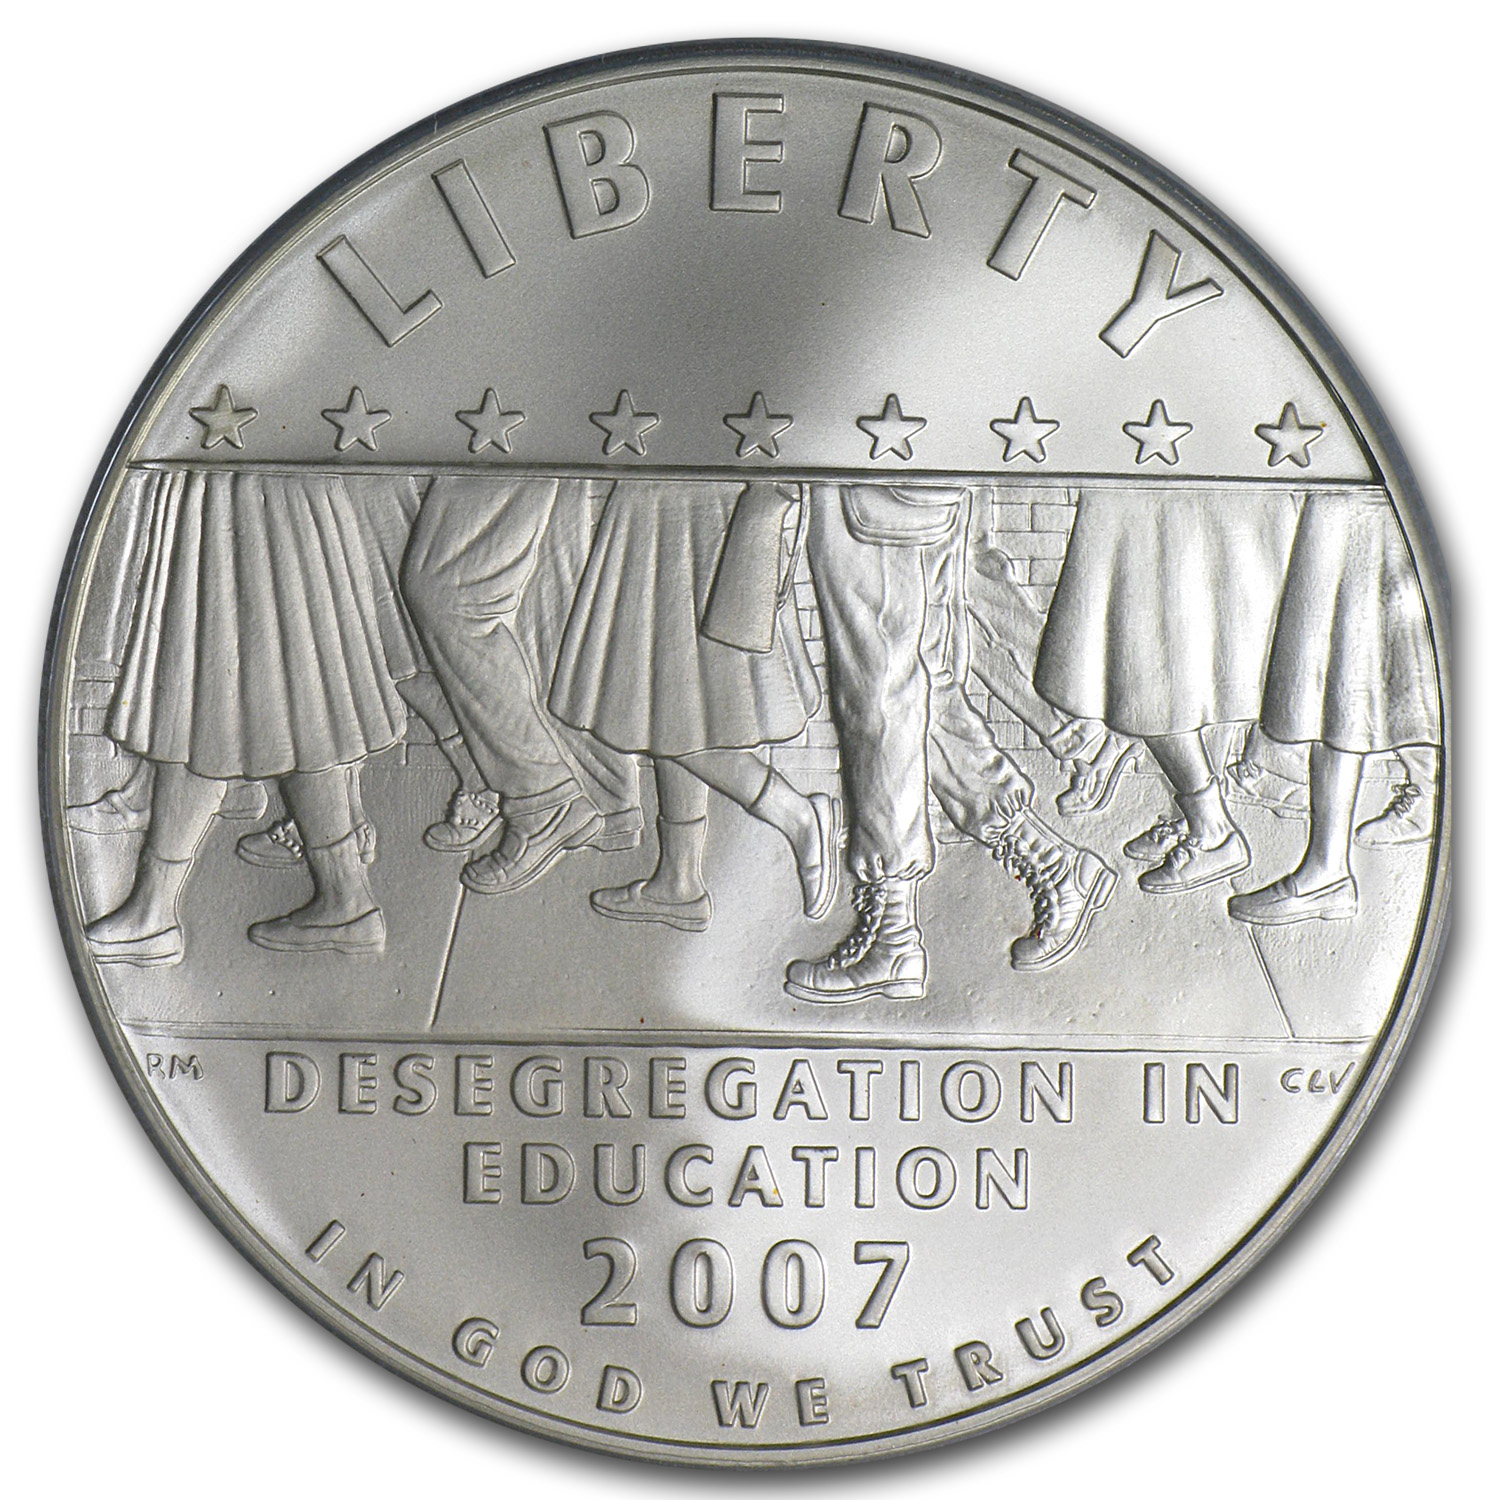 2007-P School Desegregation $1 Silver Commemorative MS-70 PCGS